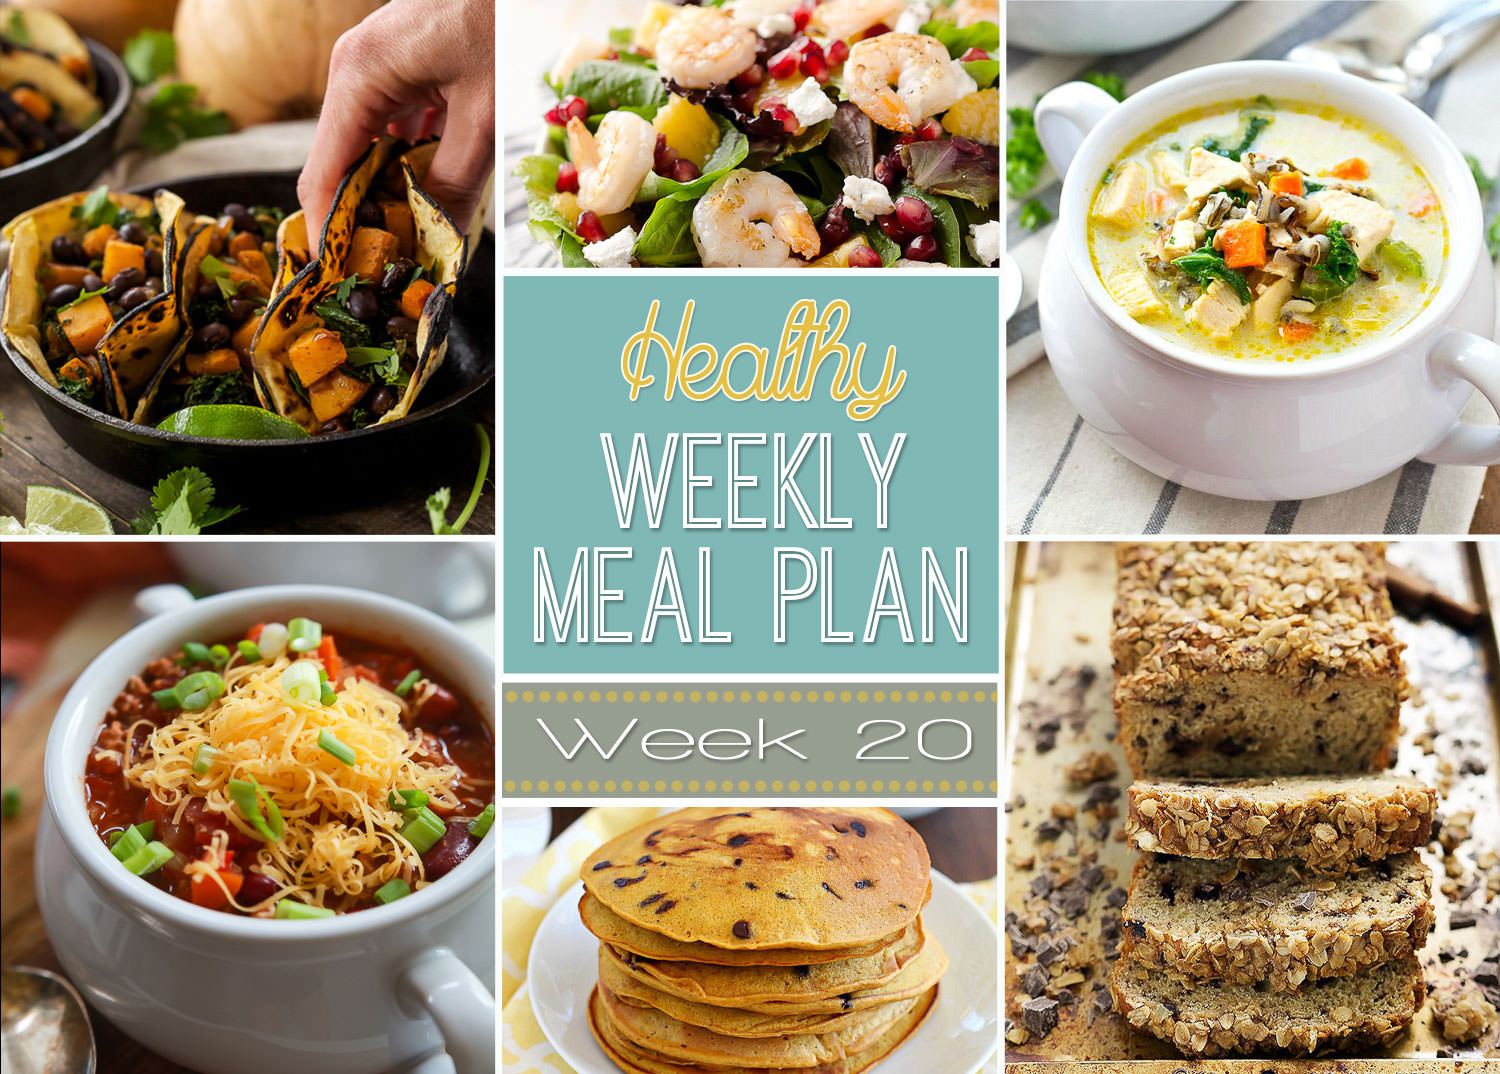 This weeks Healthy Meal Plan is filled with comfort food like Creamy Leftover Turkey Wild Rice Soup and banana bread for snacking!